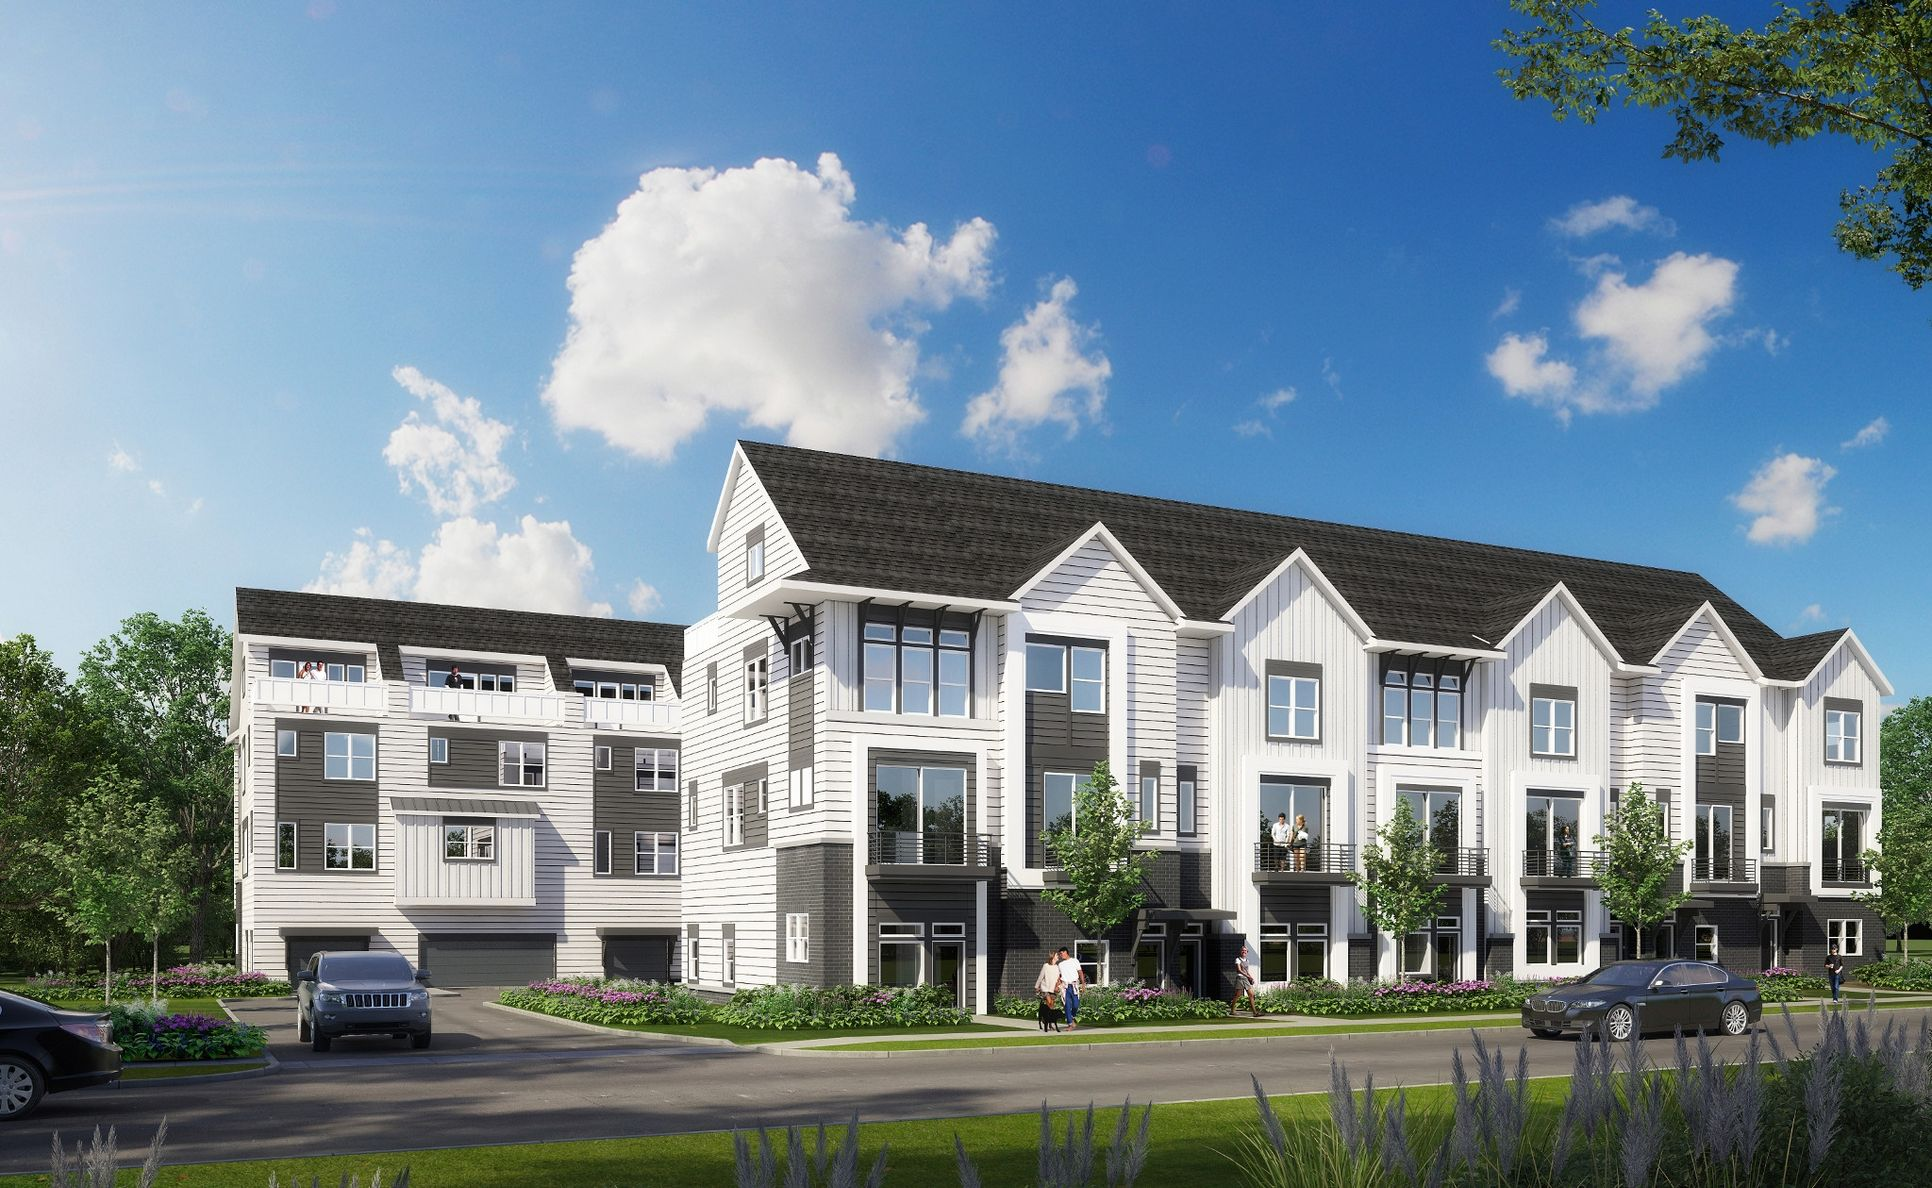 Lucent at Cotswold rendering